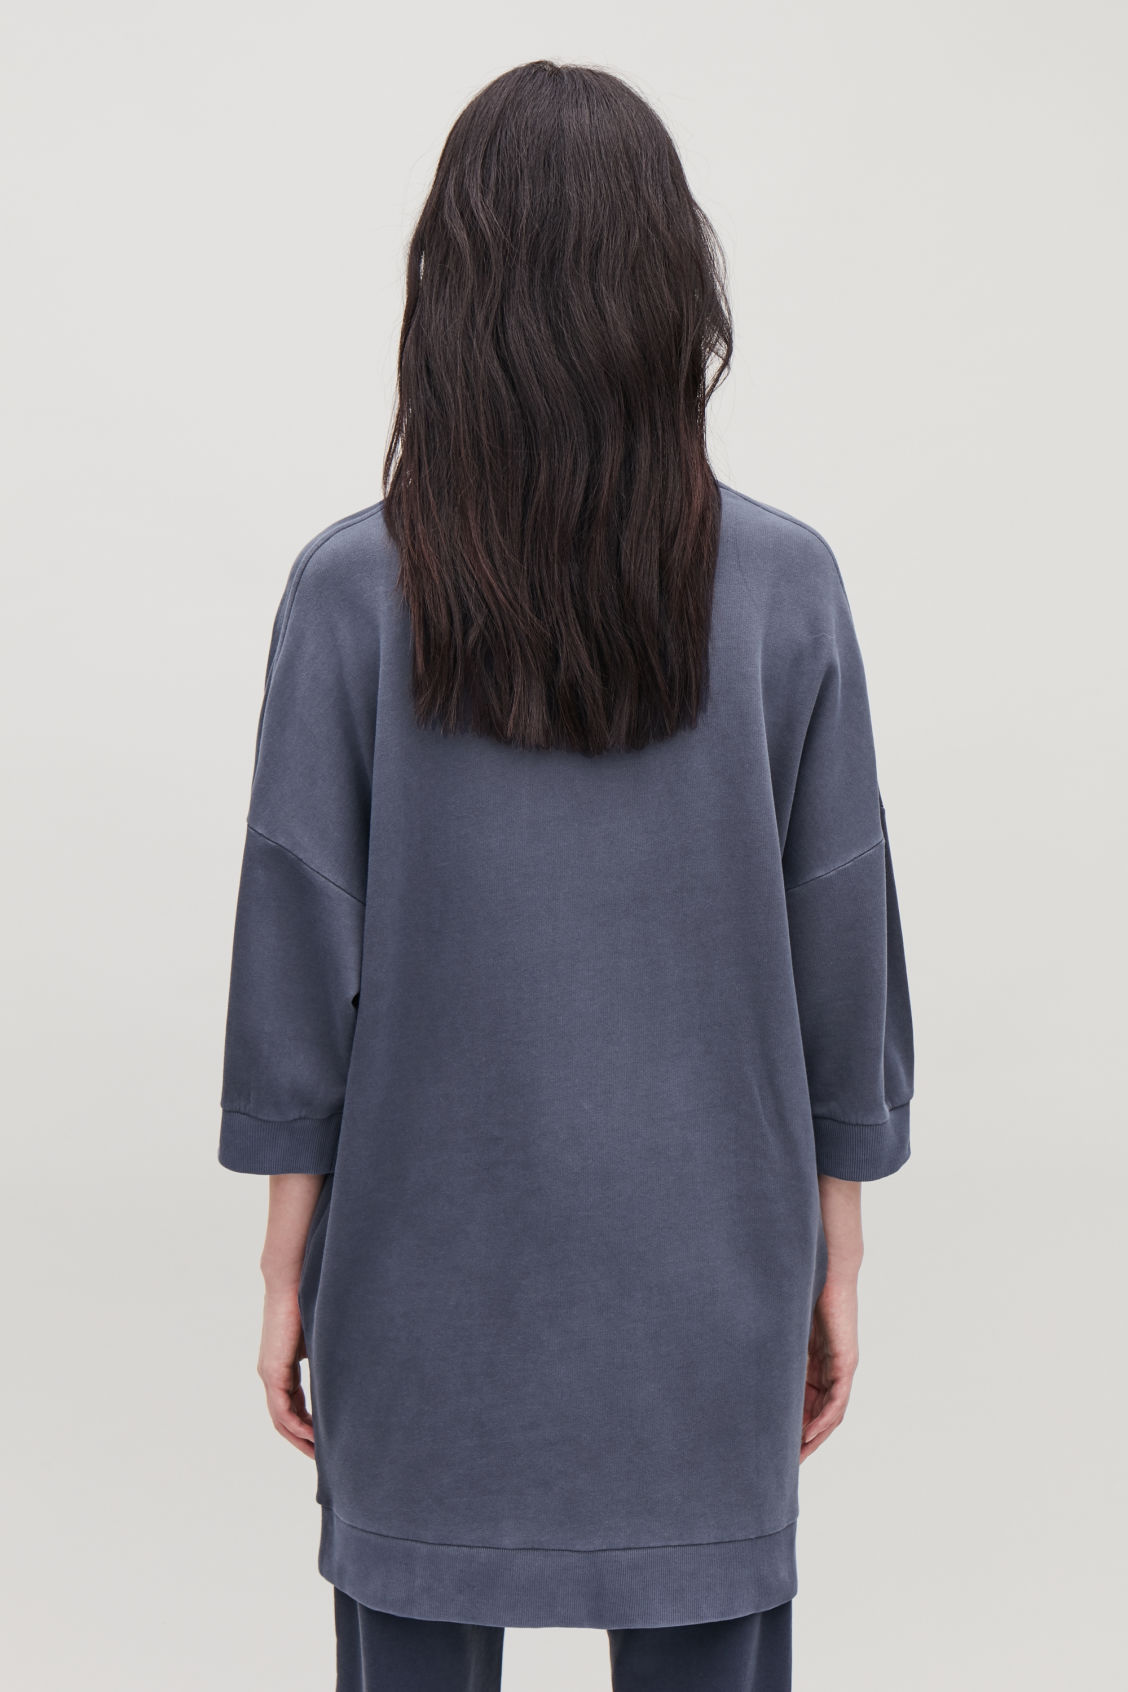 Model side image of Cos ¾-sleeved sweatshirt dress in blue